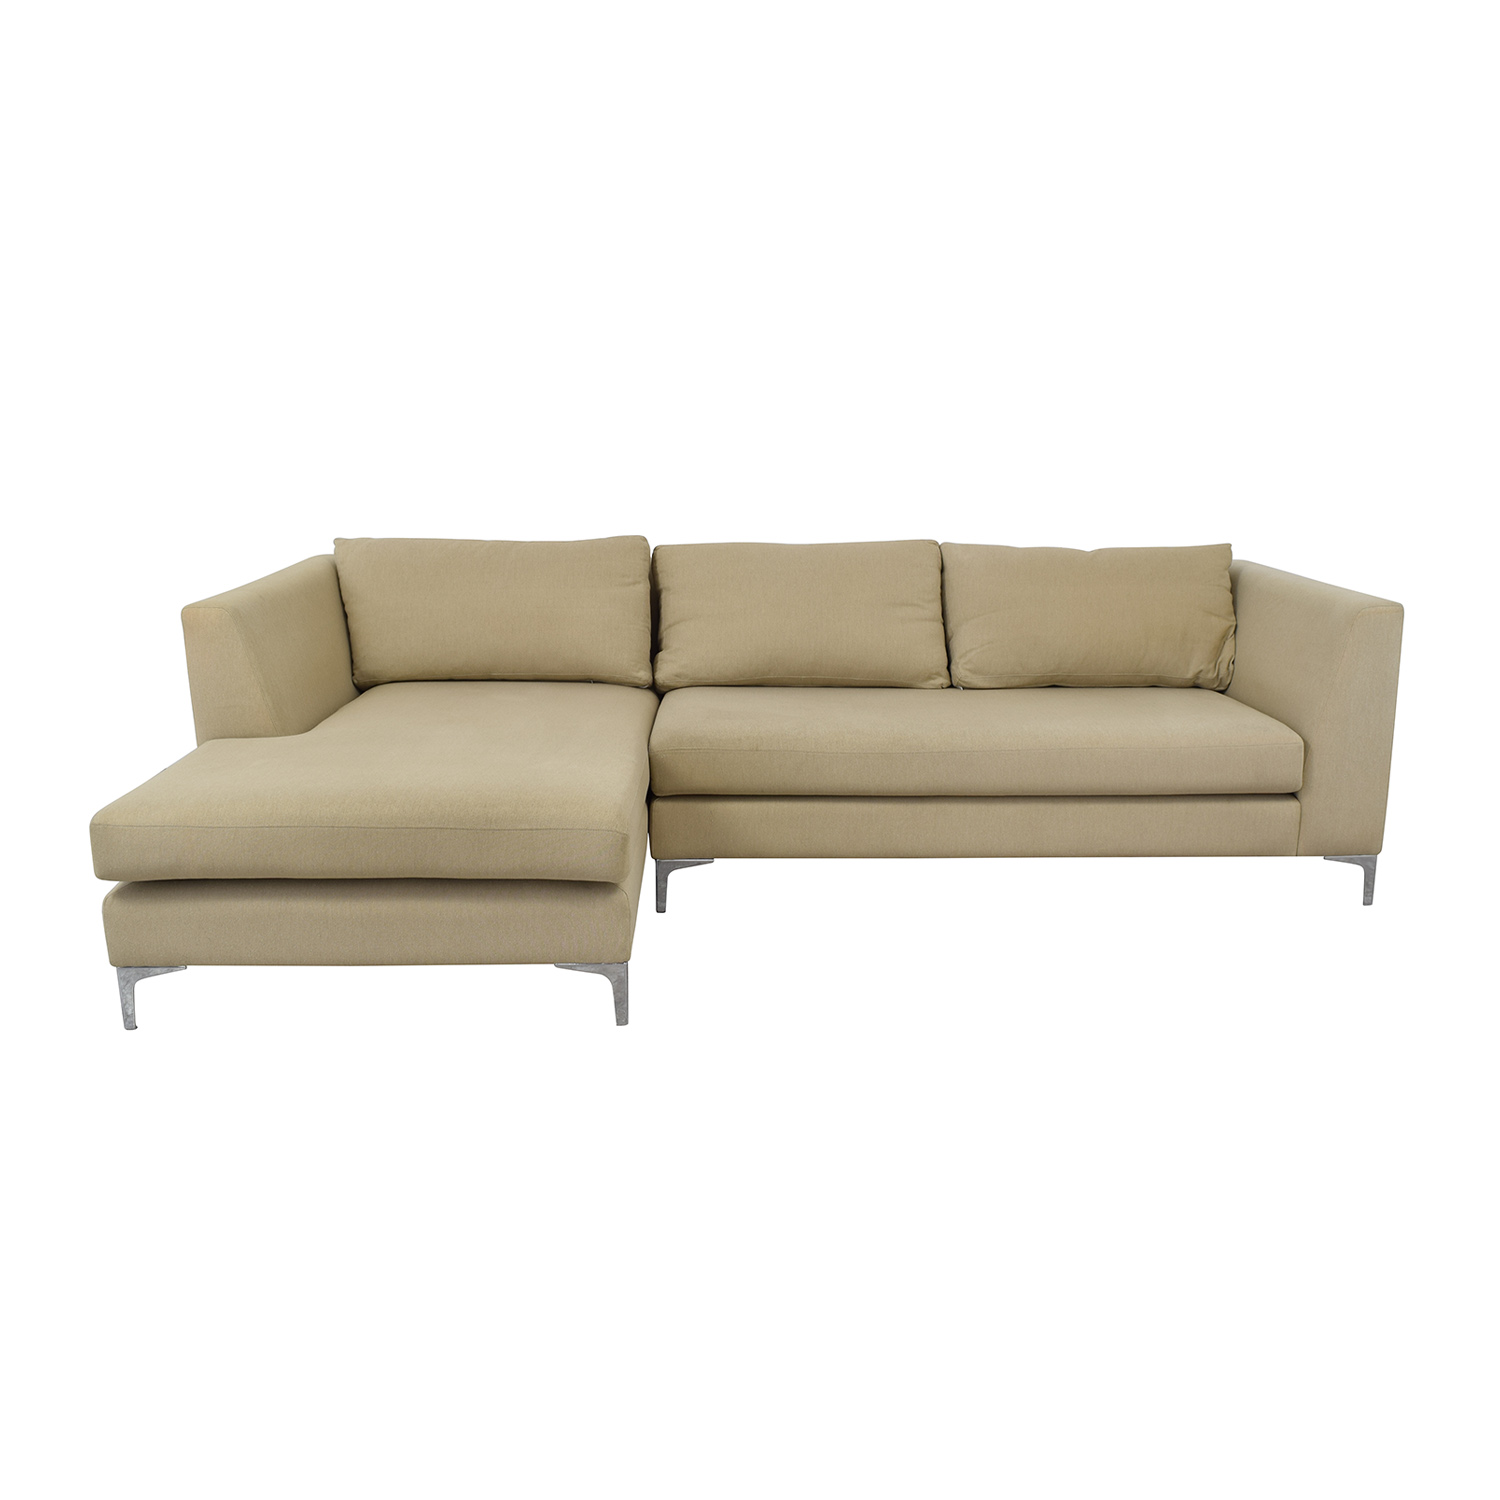 ABC Carpet & Home ABC Carpet & Home Modern Condo Sectional Sofa for sale